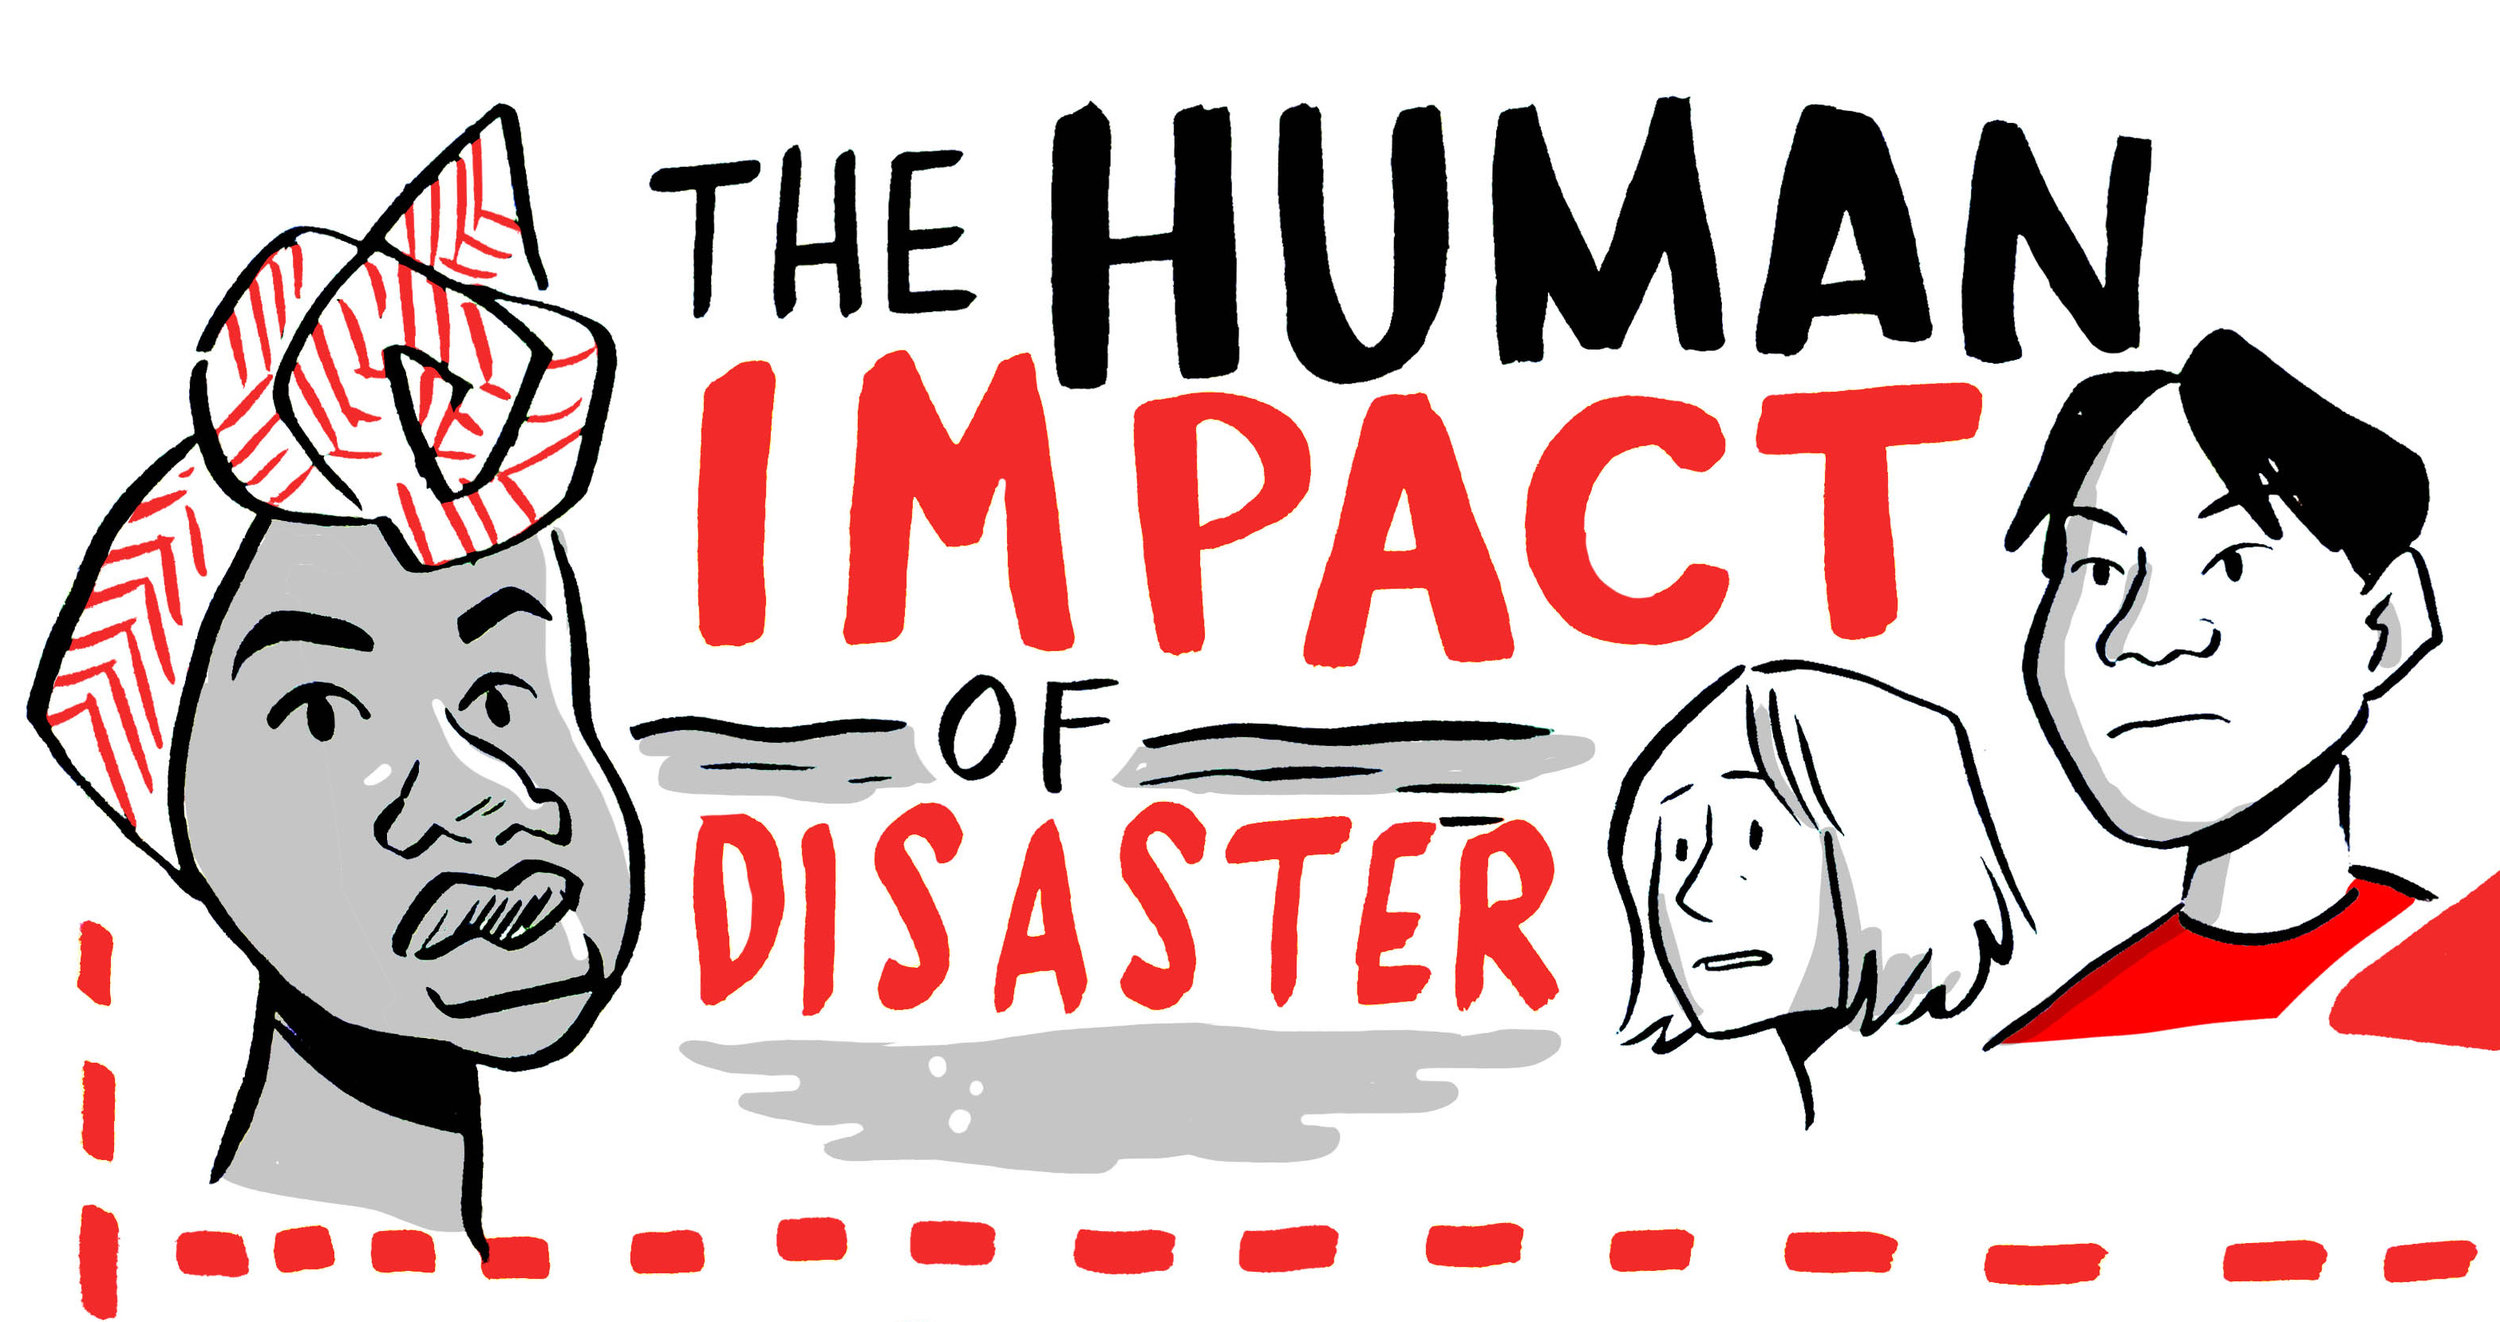 Scribing from UCL's Grand Challenge event, 'Humanity in Disasters' | Scriberia